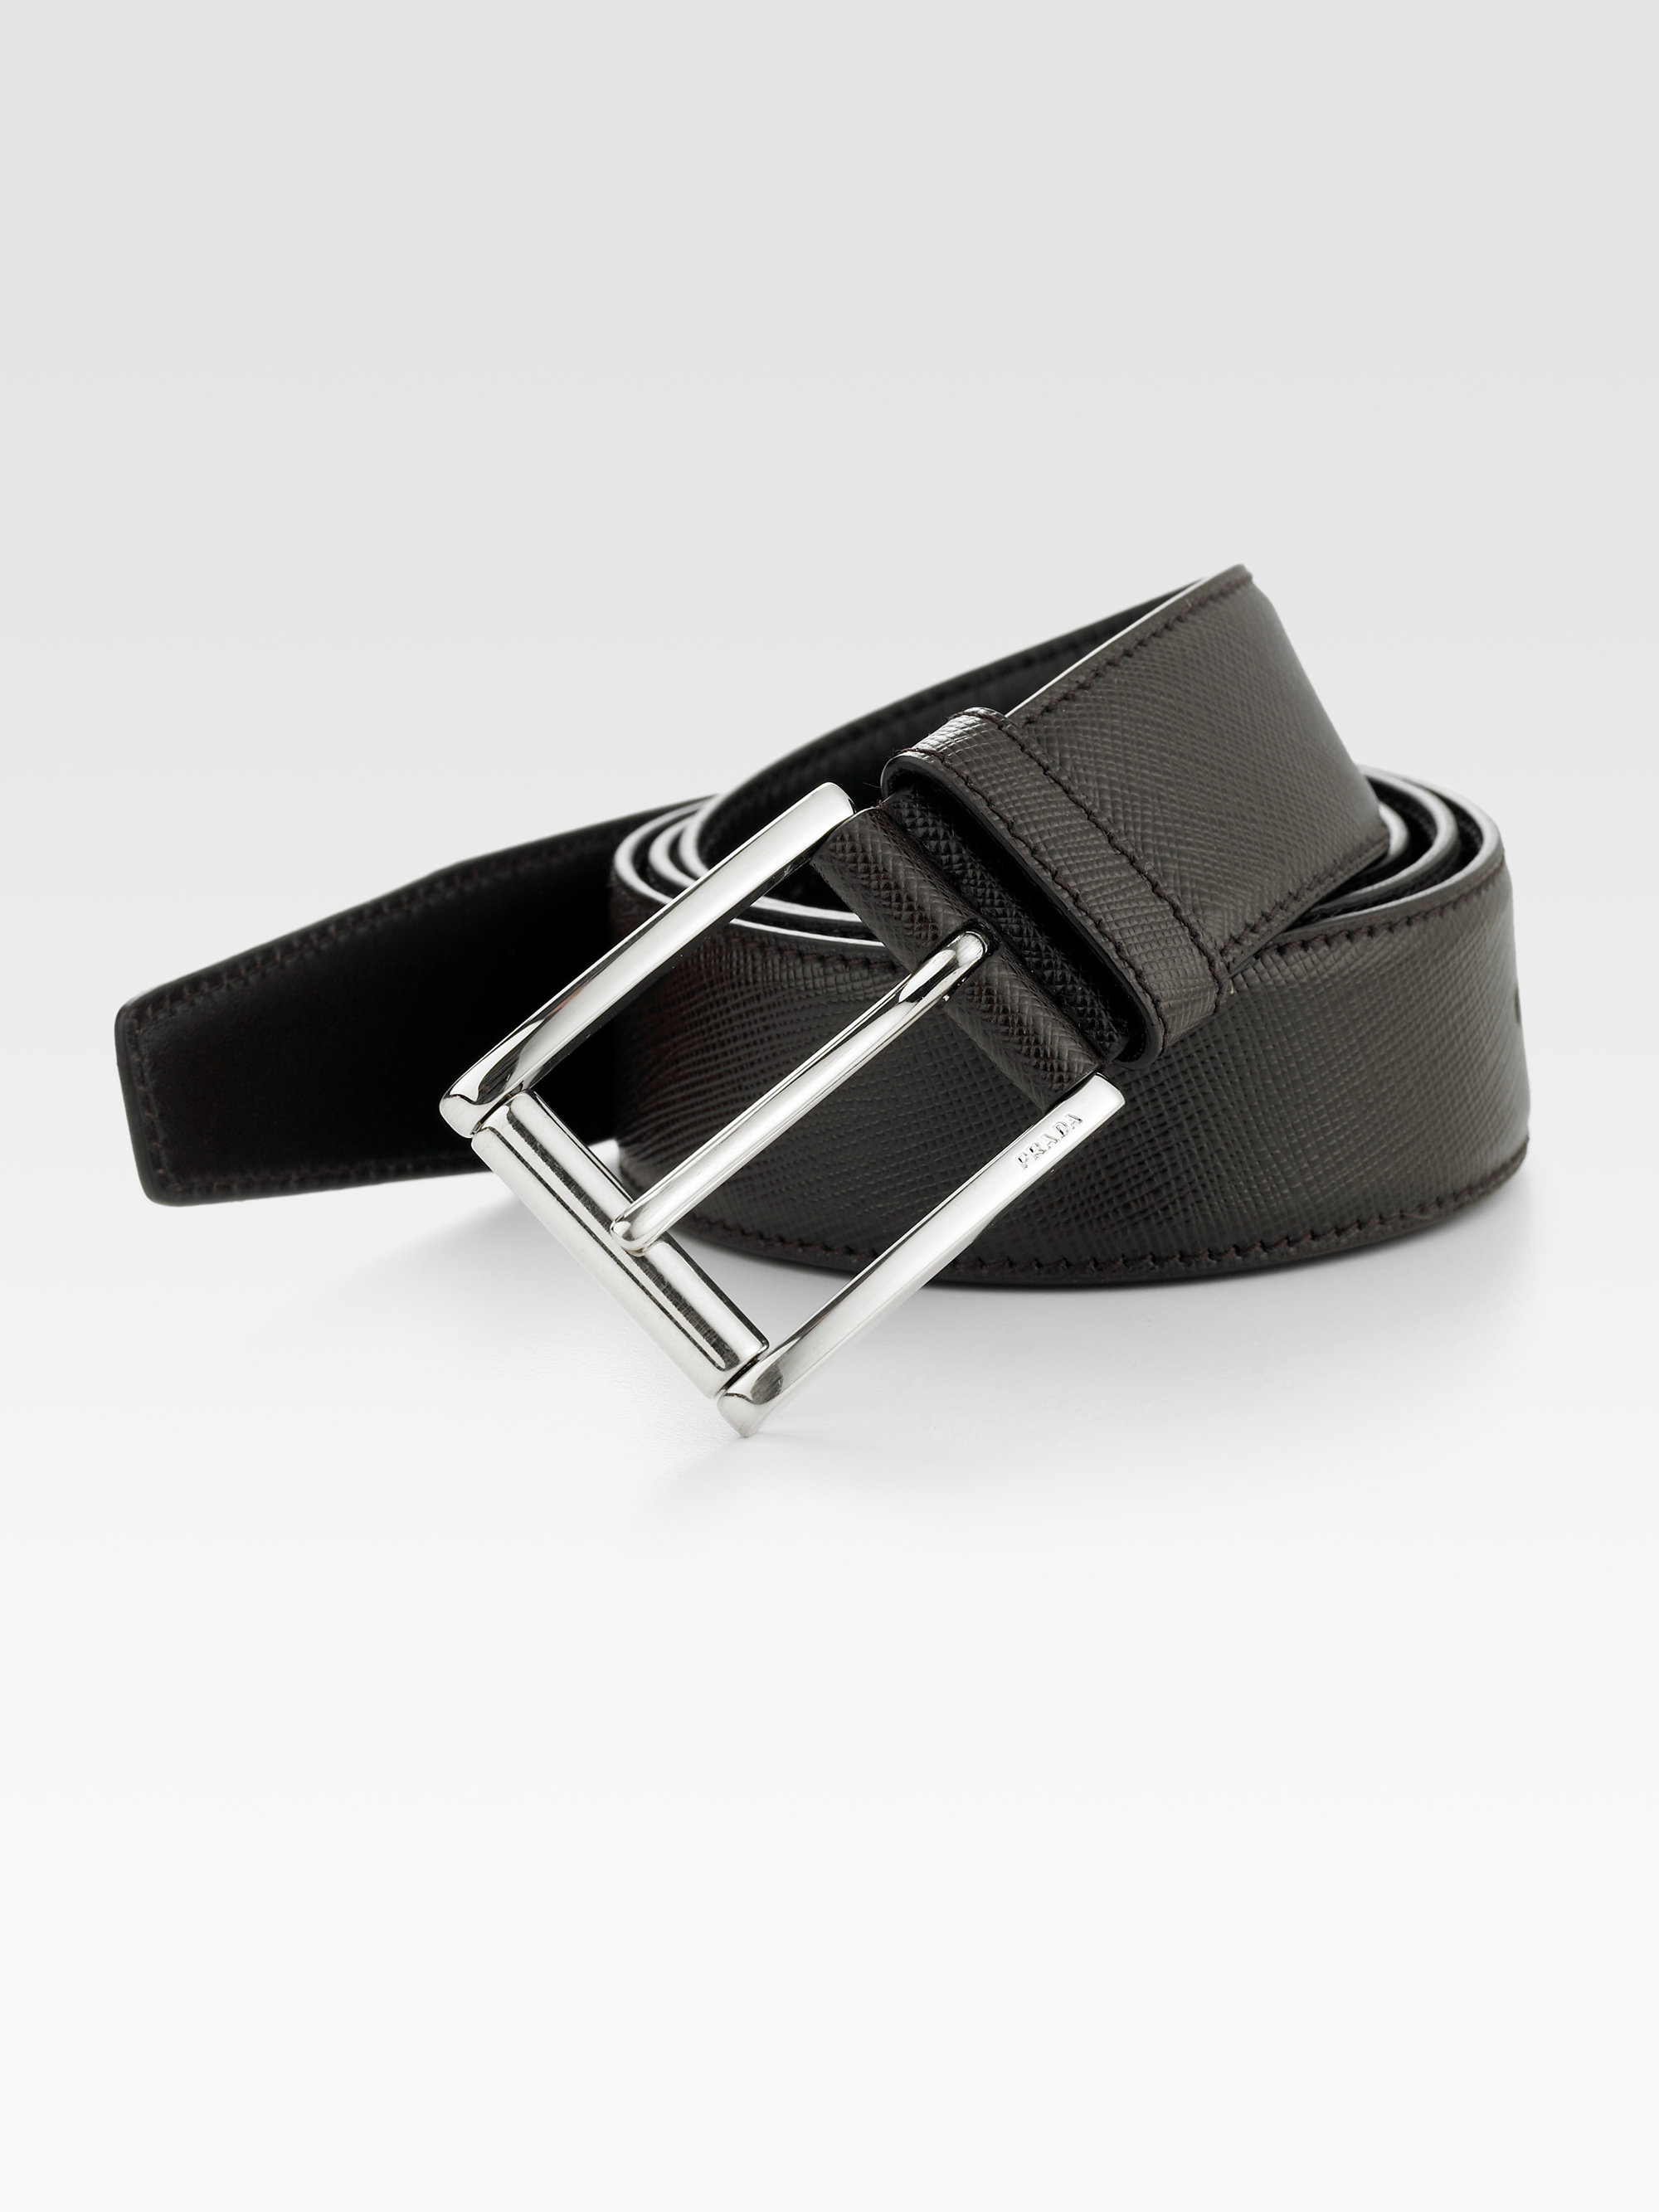 9576be4a6f Prada Brown Etched Saffiano Leather Belt for men